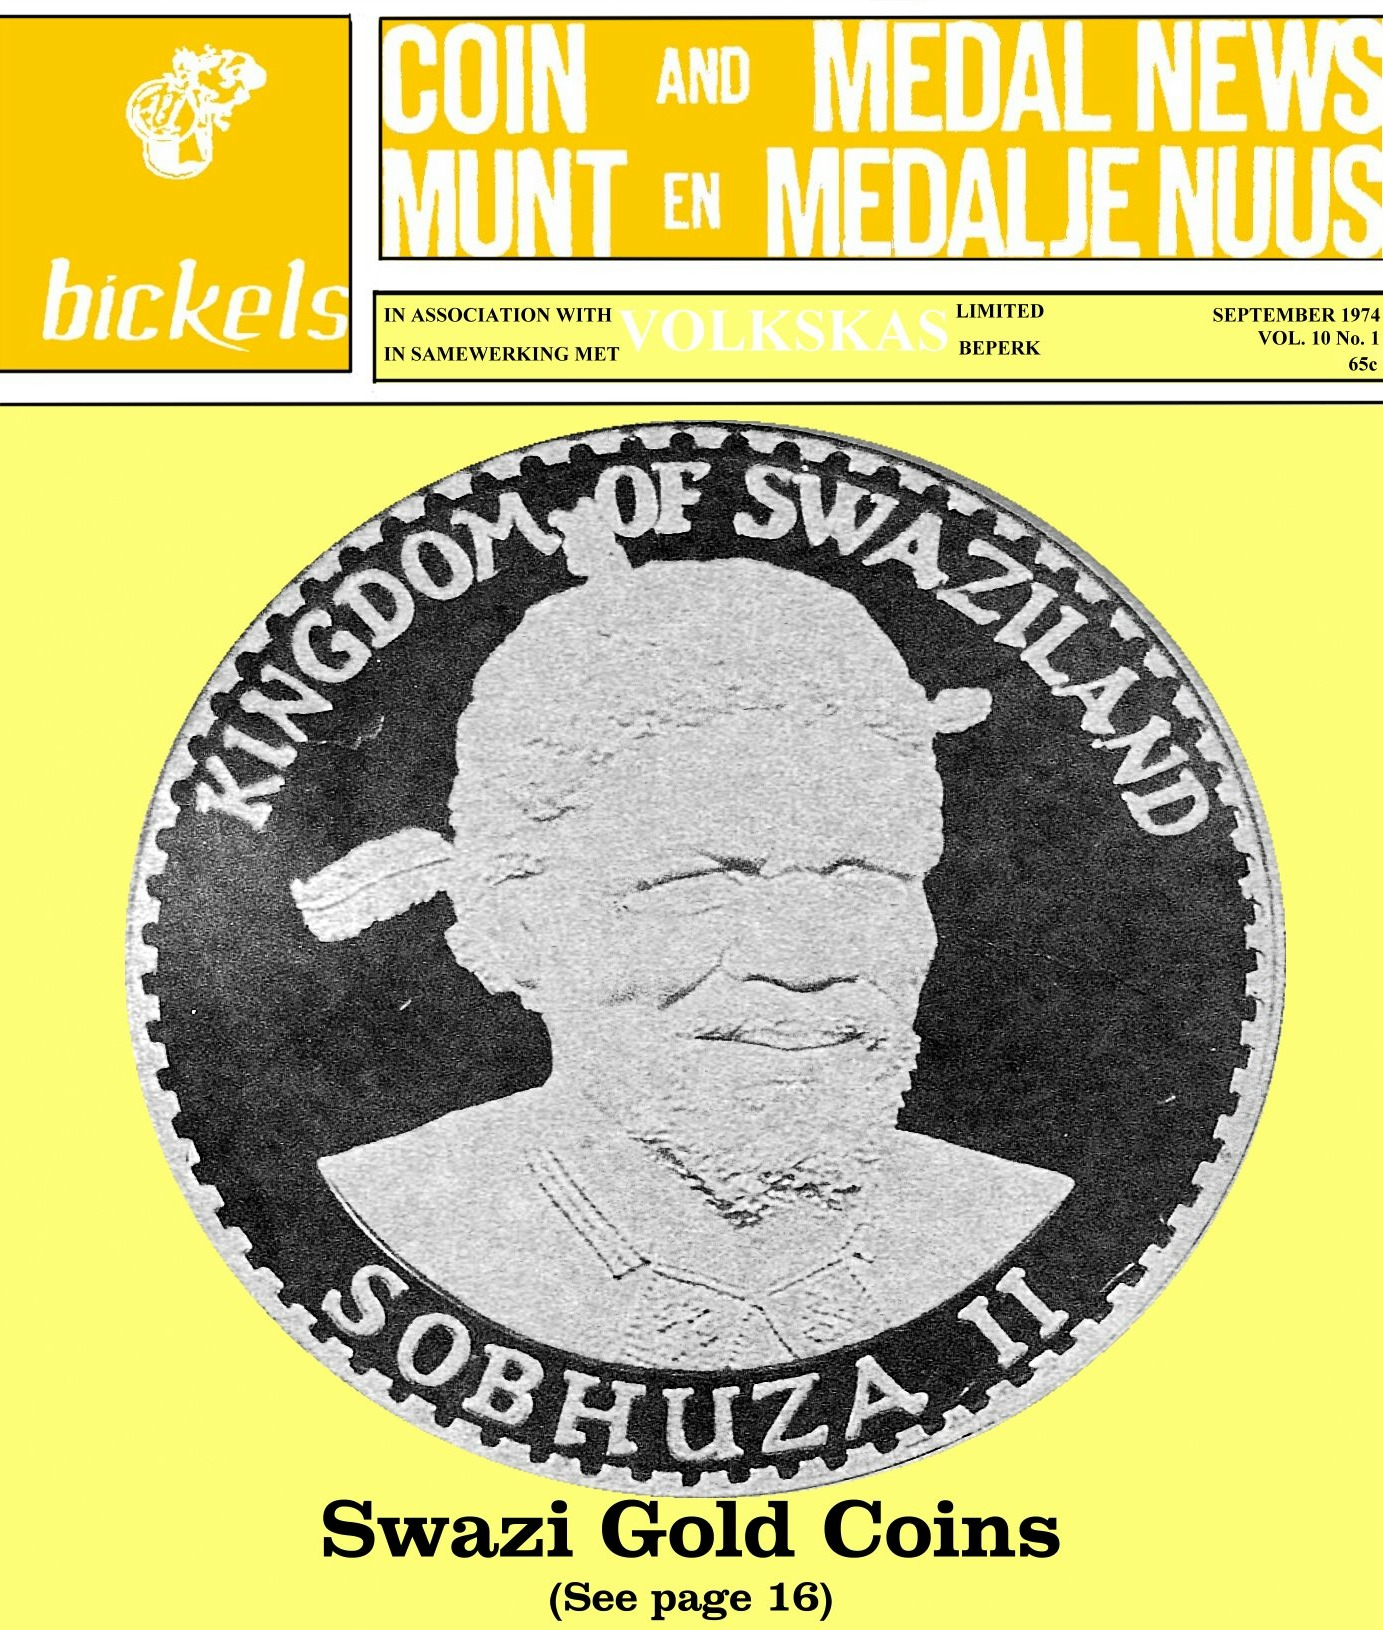 Bickels Coin & Medal News September 1974 Vol 10 No 1